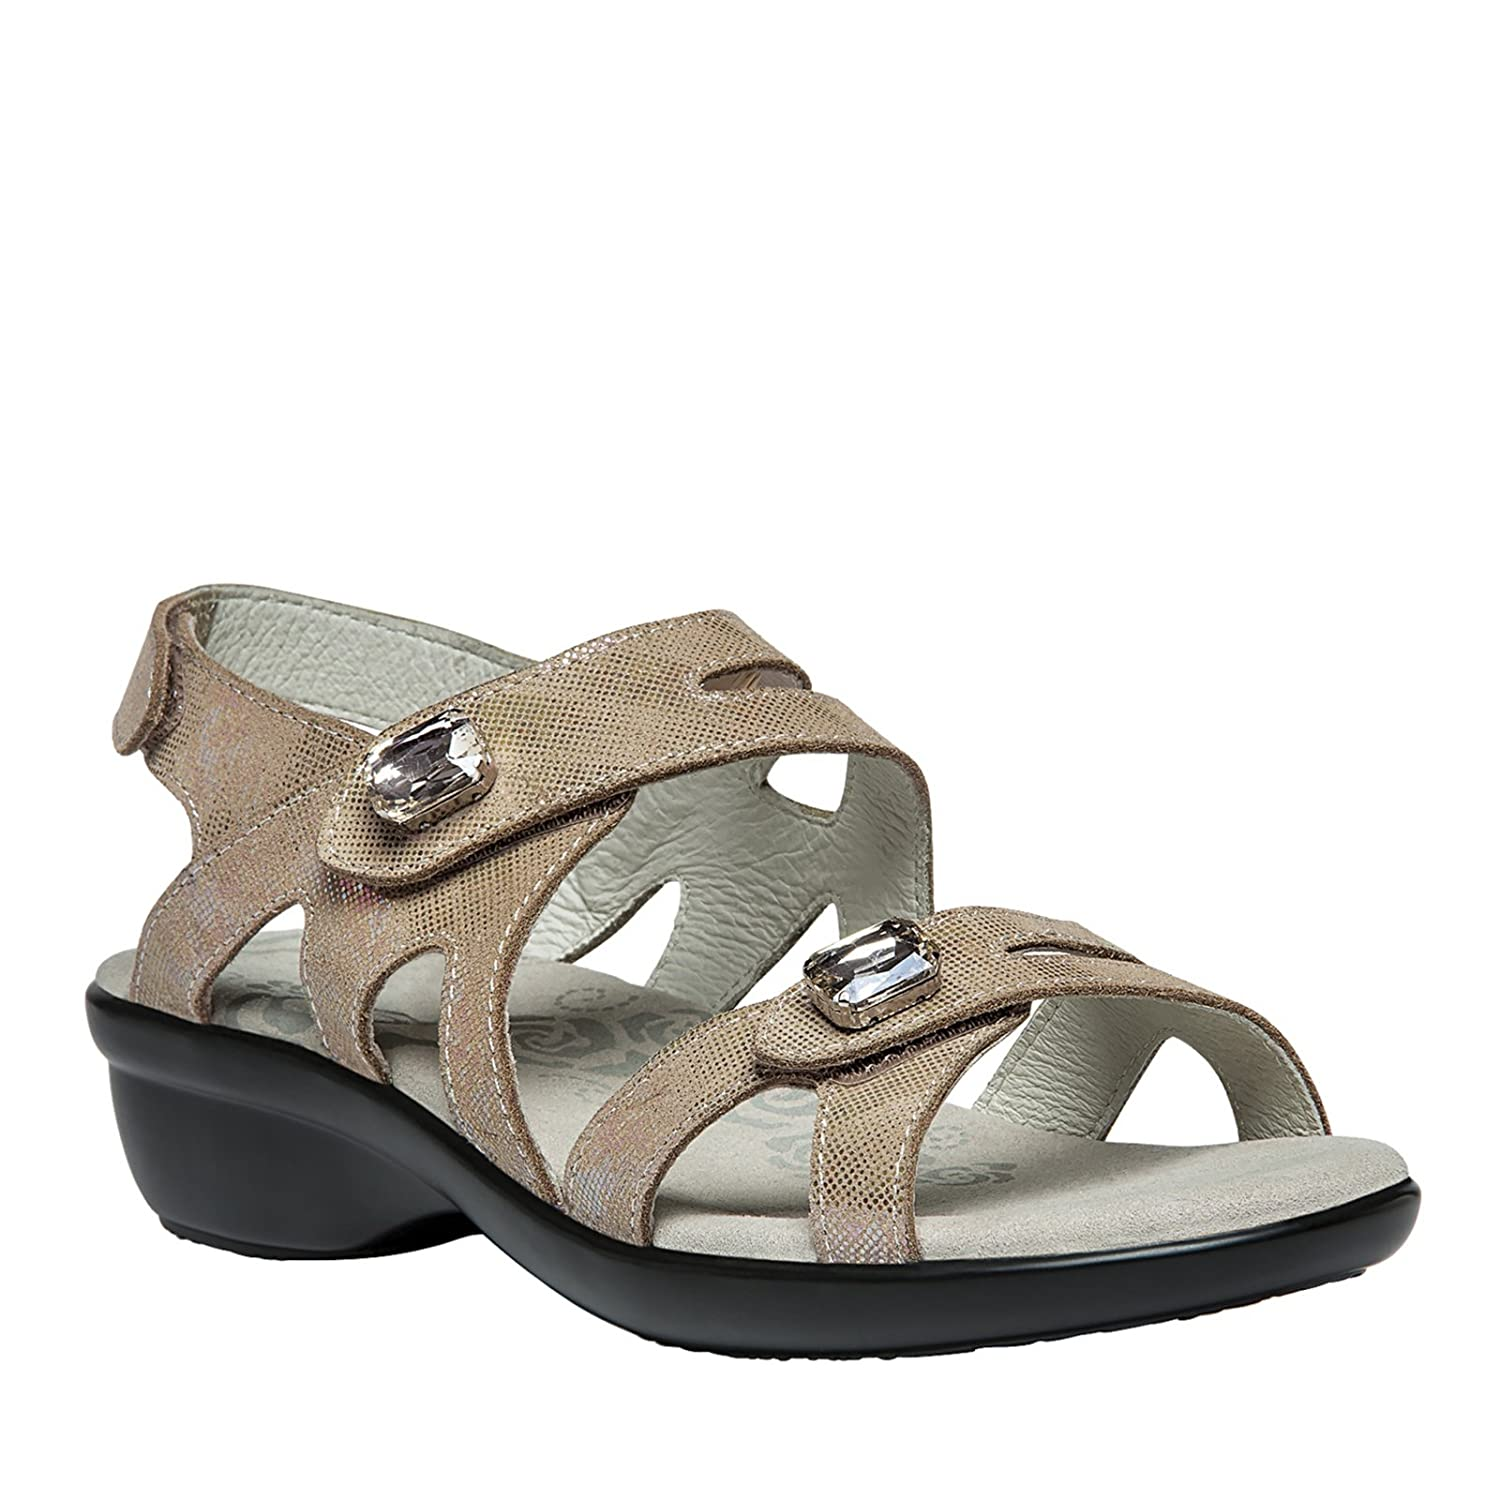 Propet Women's Cheryl Leather, Foam, Polyurethane Wedge Sandals B0118BW6OM 10 B(M) US|Champagne Foil